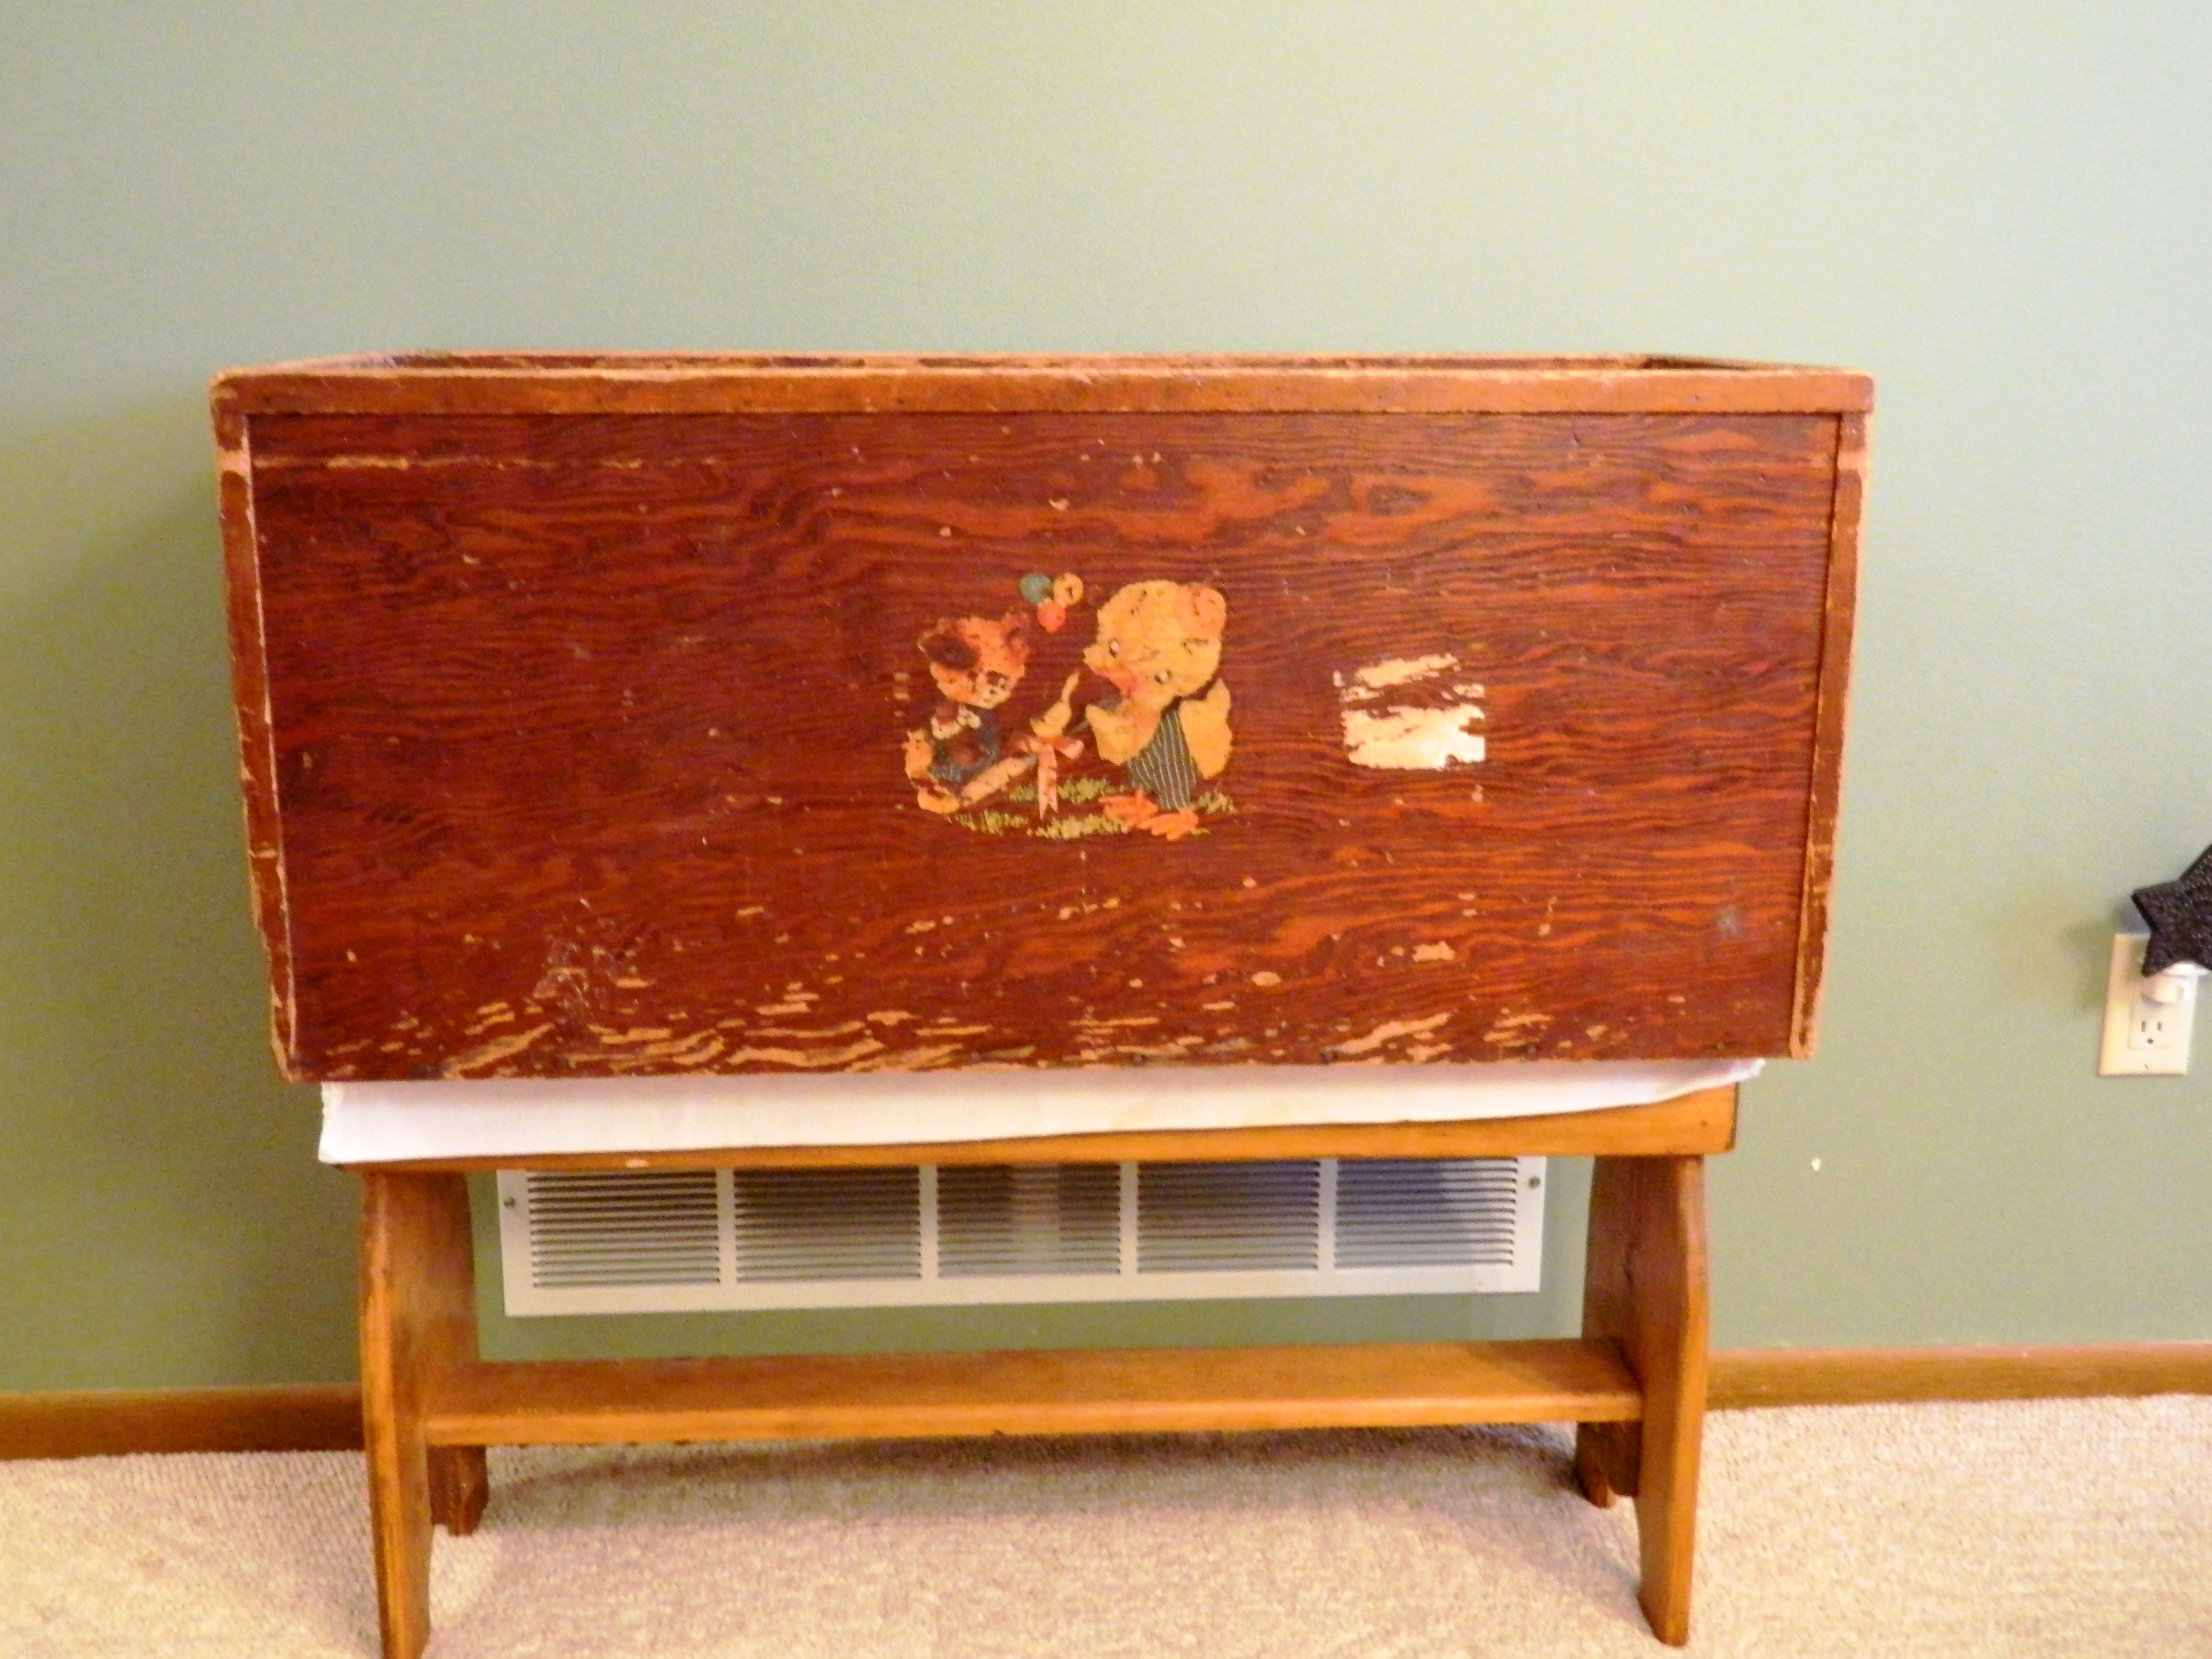 ... Rinker about this handmade wooden toy box purchased at a garage sale